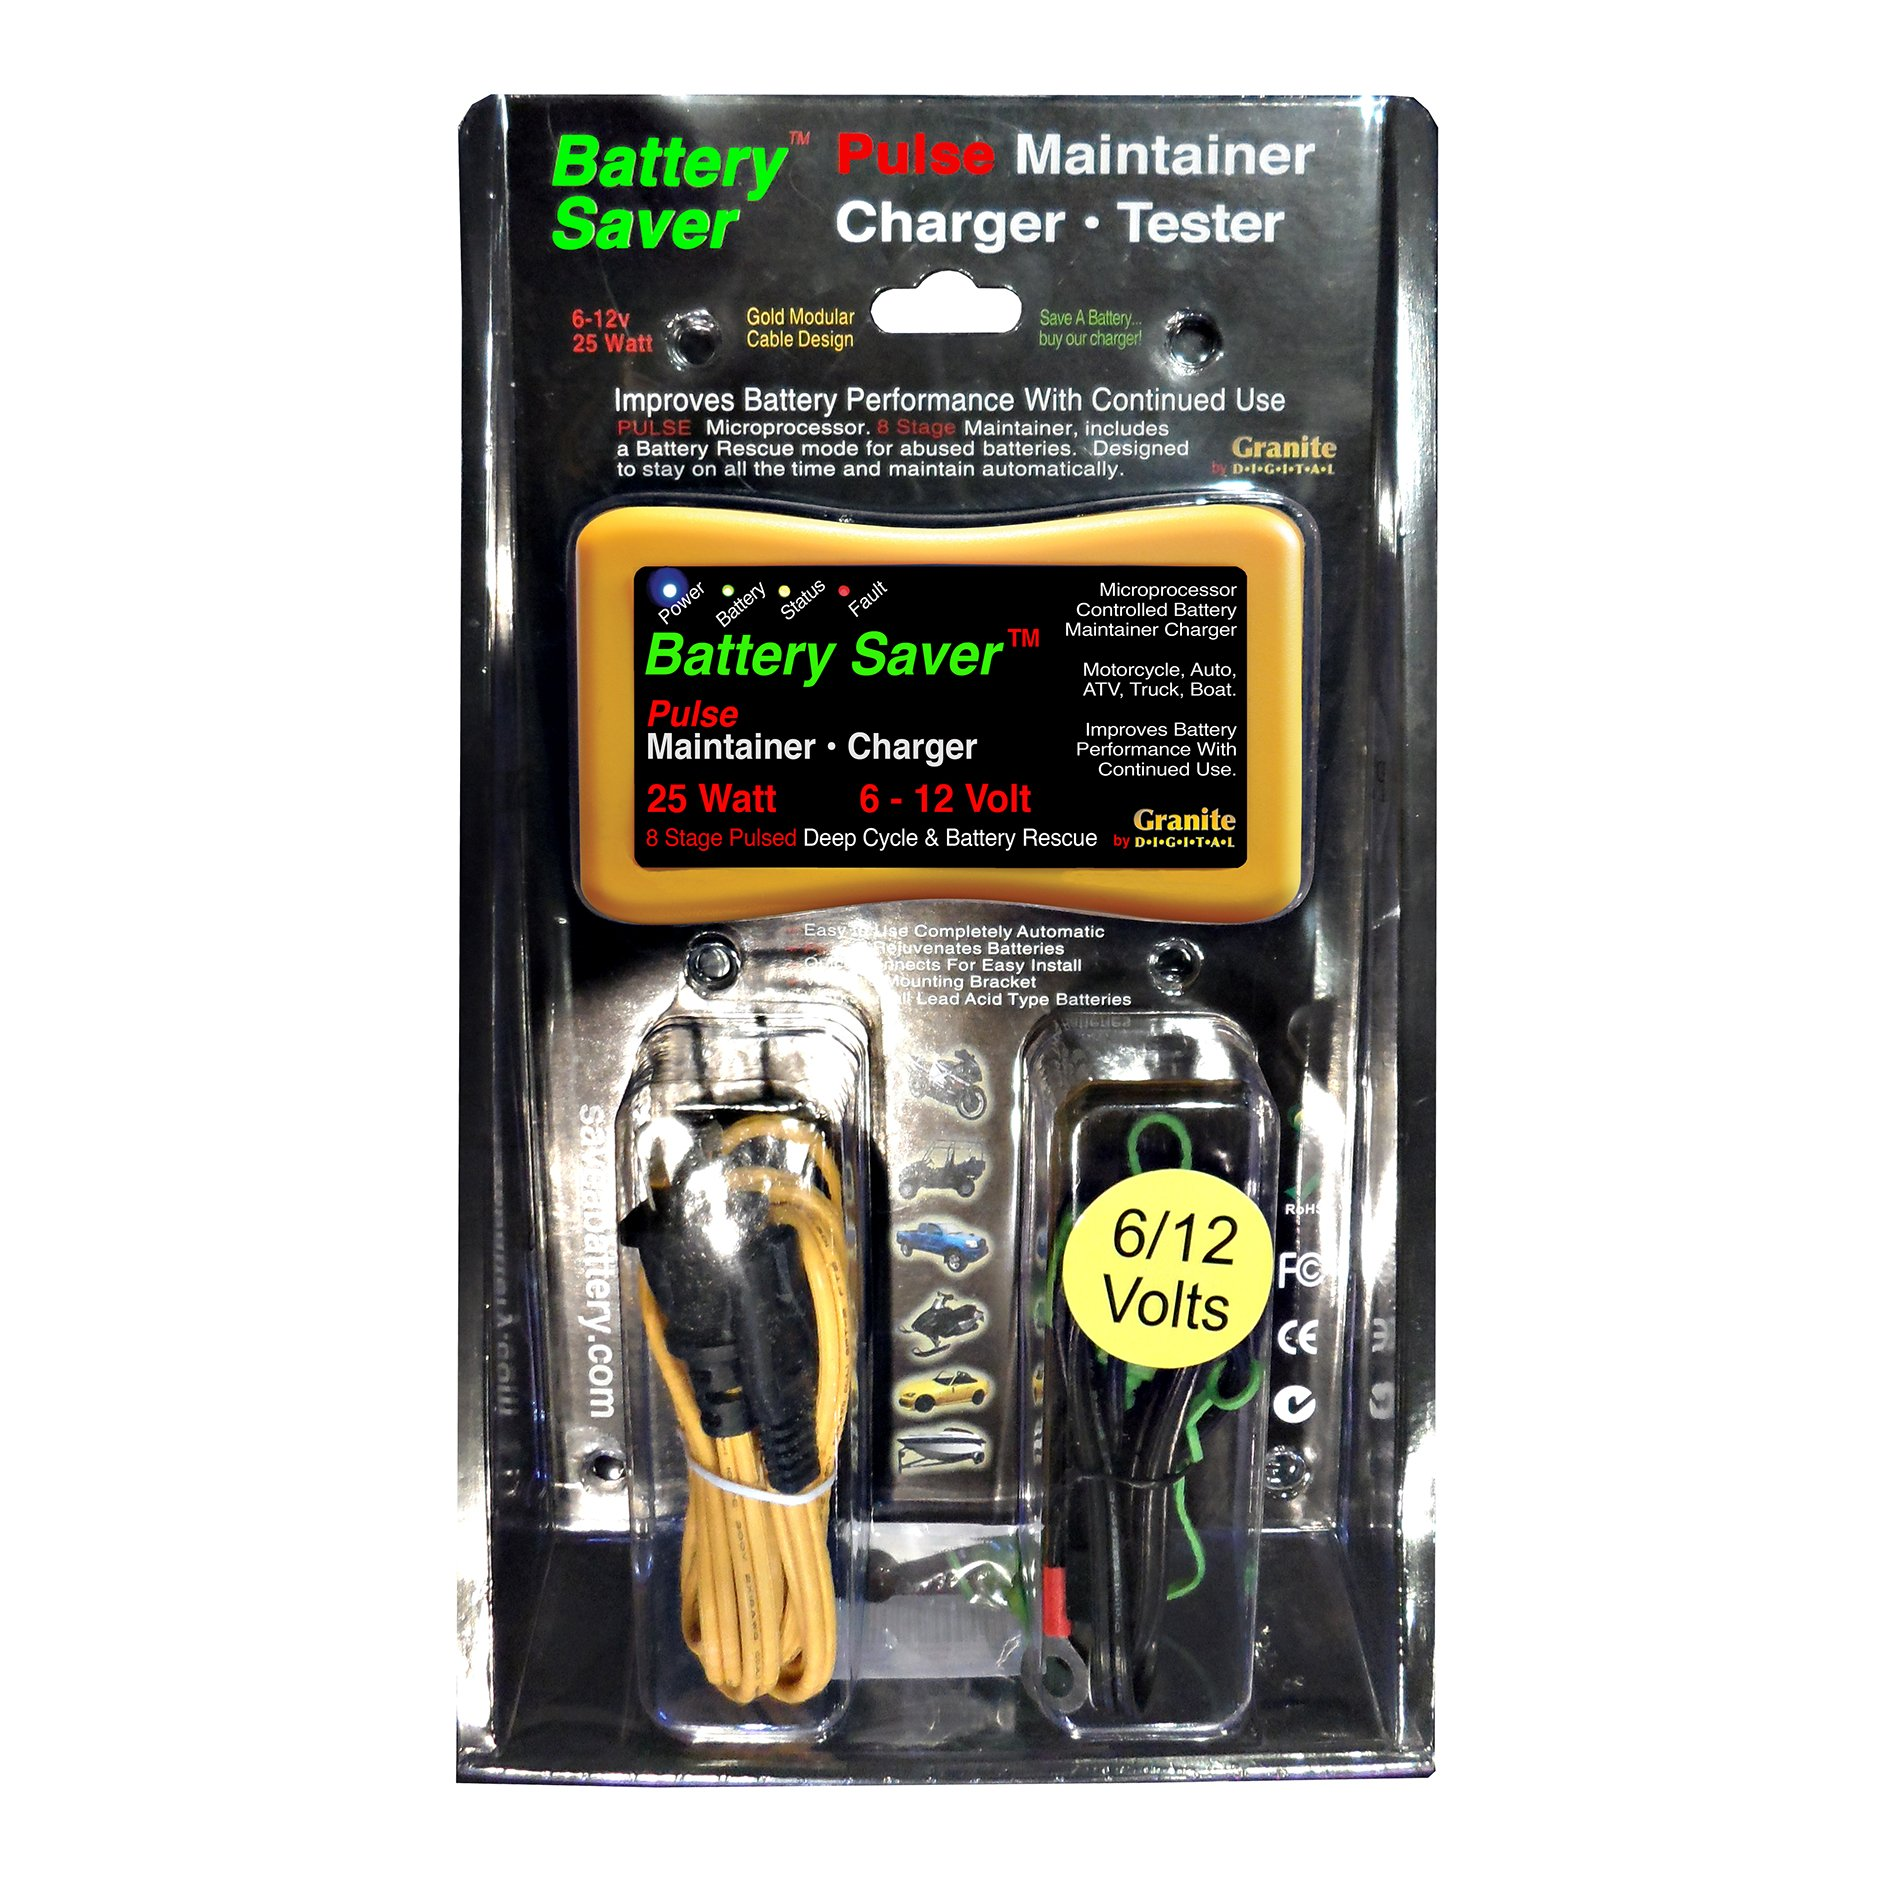 Save A Battery 3015 12 Volt/25 Watt Battery Saver/Maintainer and Battery Rescue by Battery Saver (Image #3)